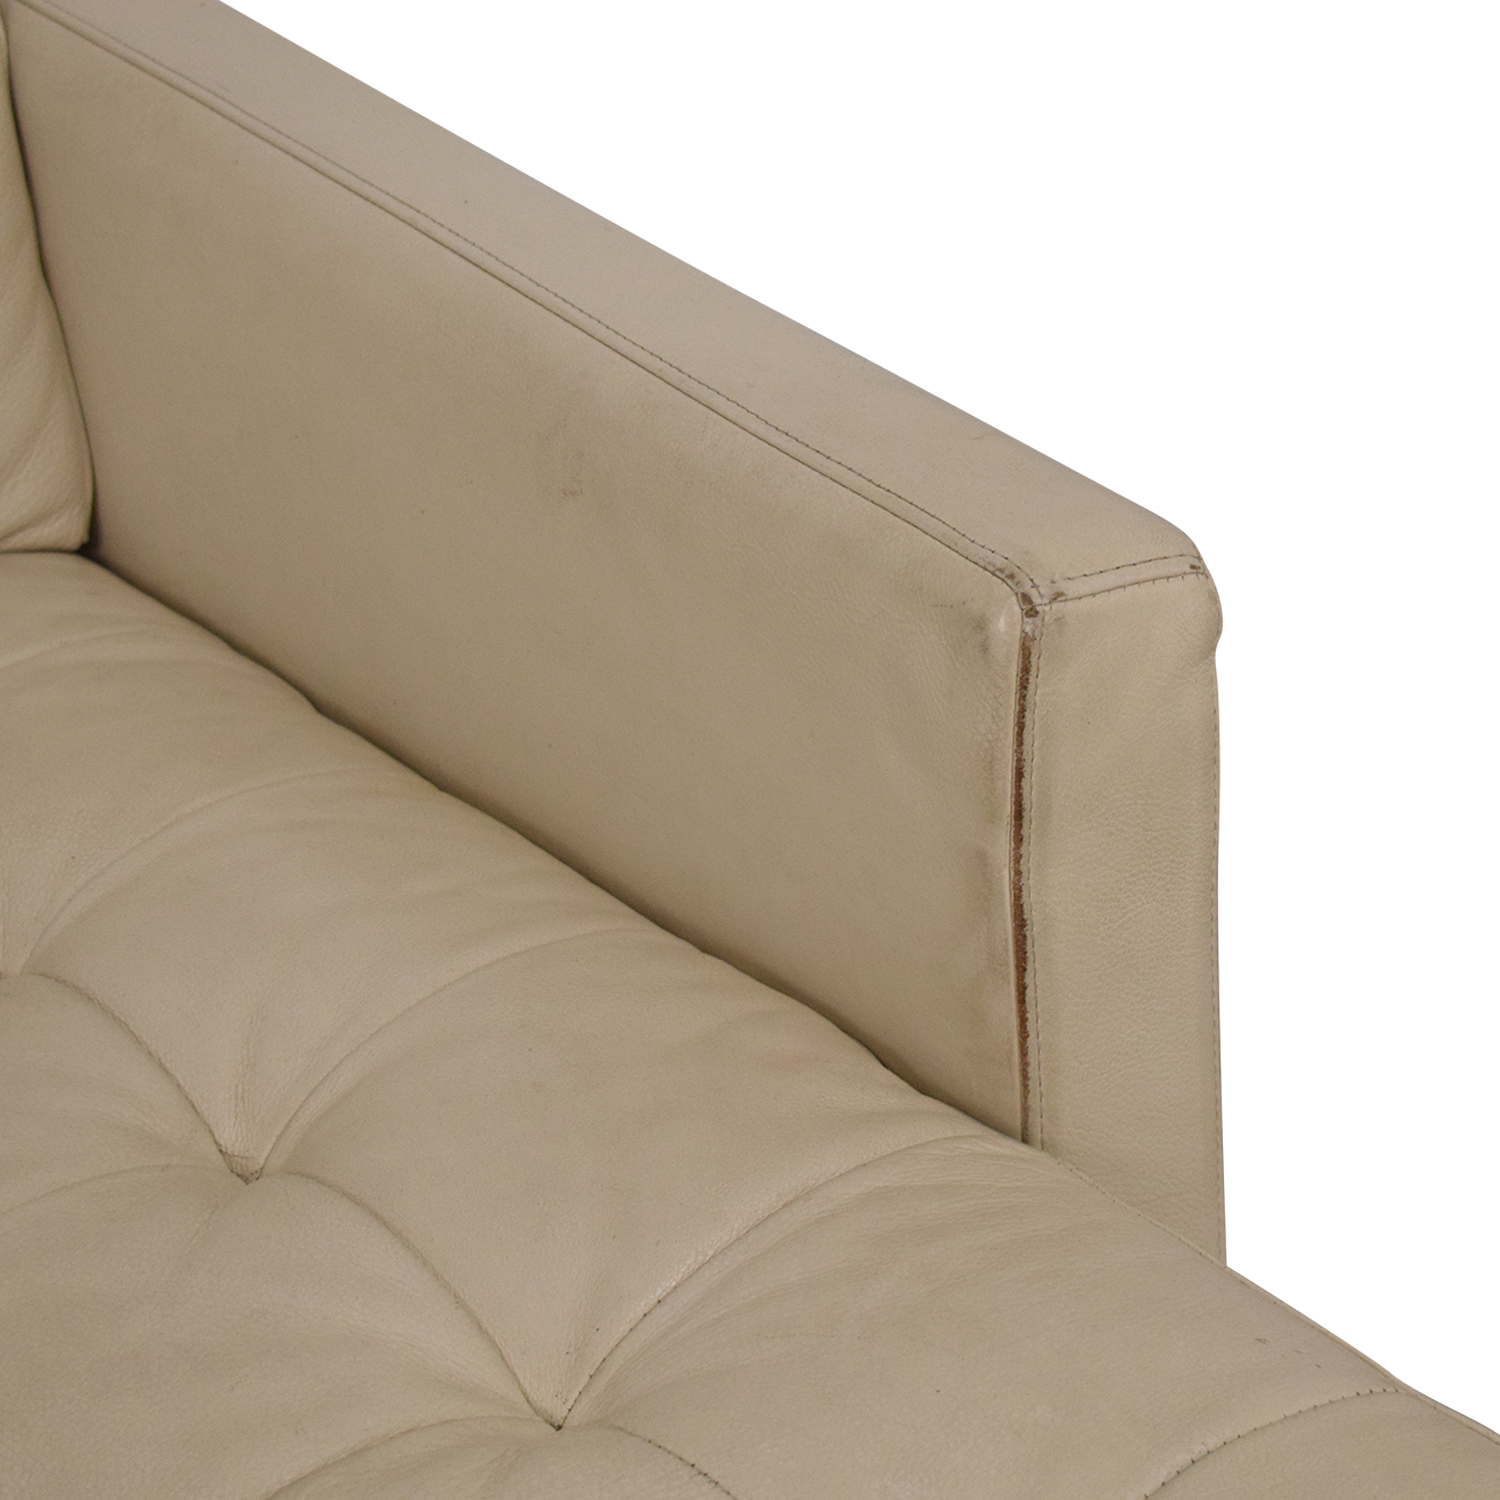 American Leather American Leather Chaise Sectional Sofa coupon